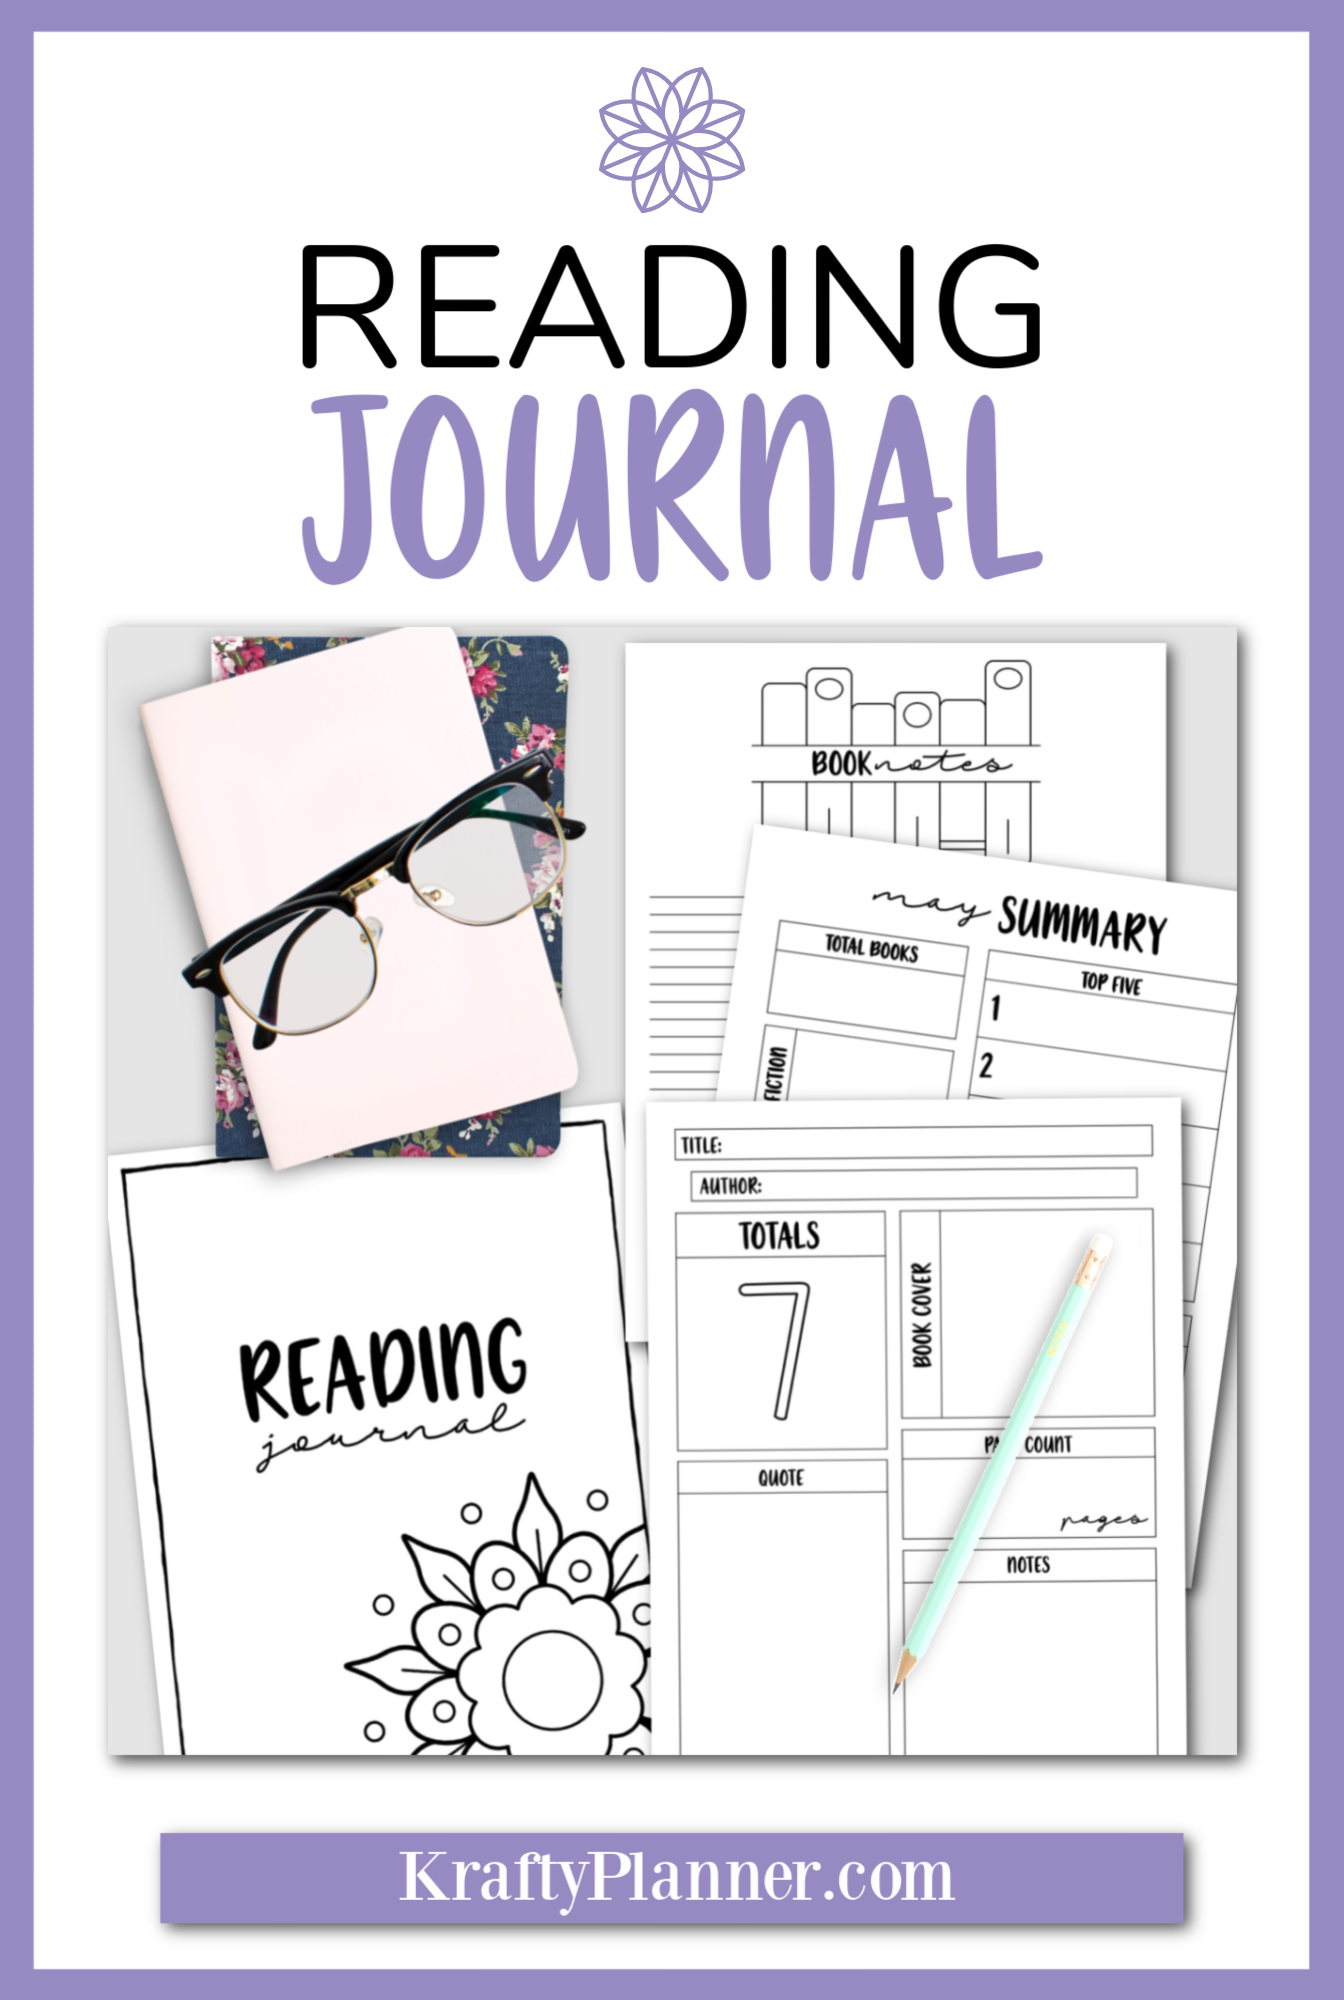 Reading Journal: 145 Page Printable PIN 2 copy.png